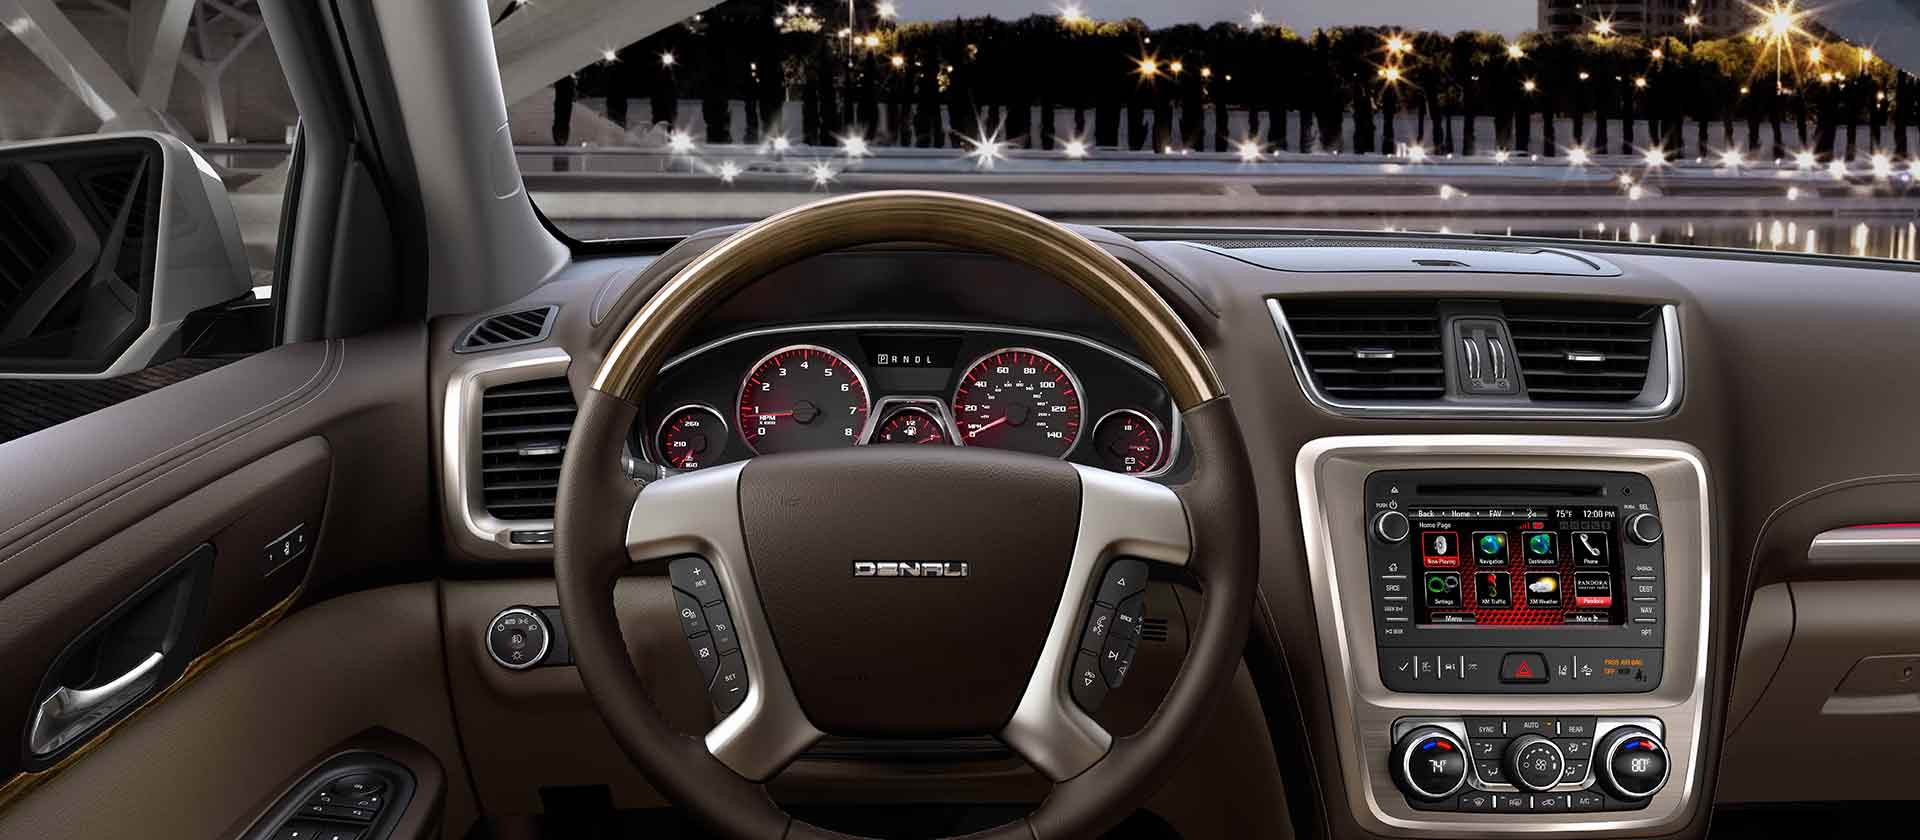 general archives page 2 of 32 cardinale gmc 2007 gmc acadia headlight switch the 2016 gmc acadia denali provides you with all the latest technologies advanced innovations such as standard 4g wi fi hotspot, capacitive touch controls,